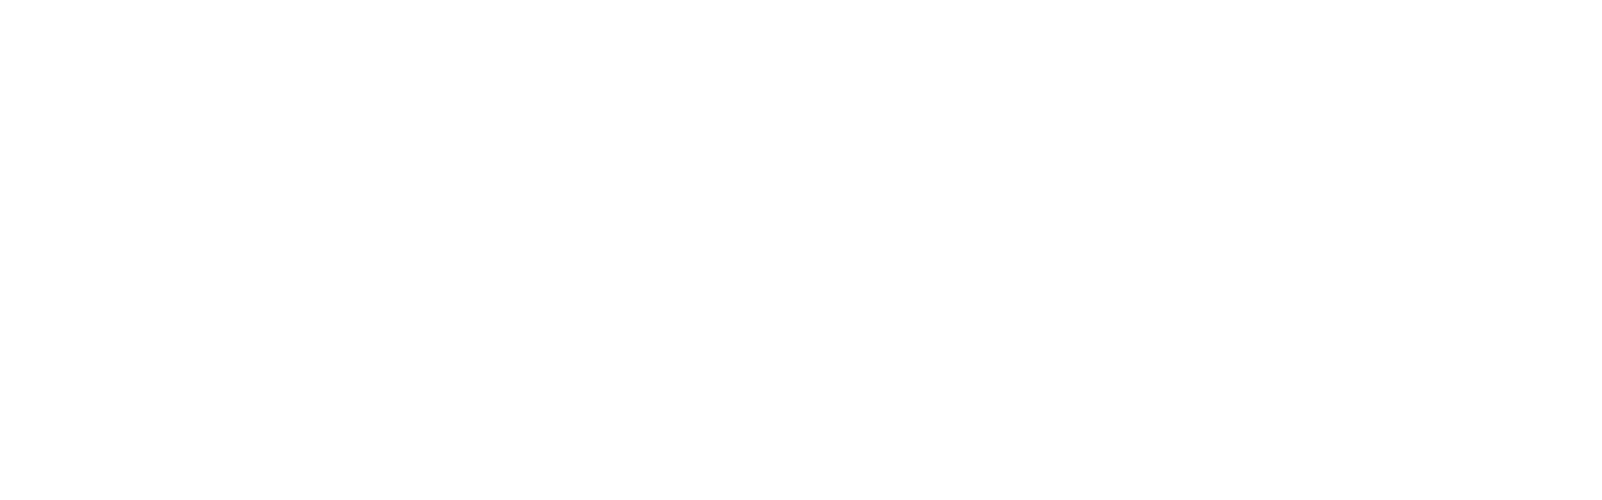 little-brown-and-company logo